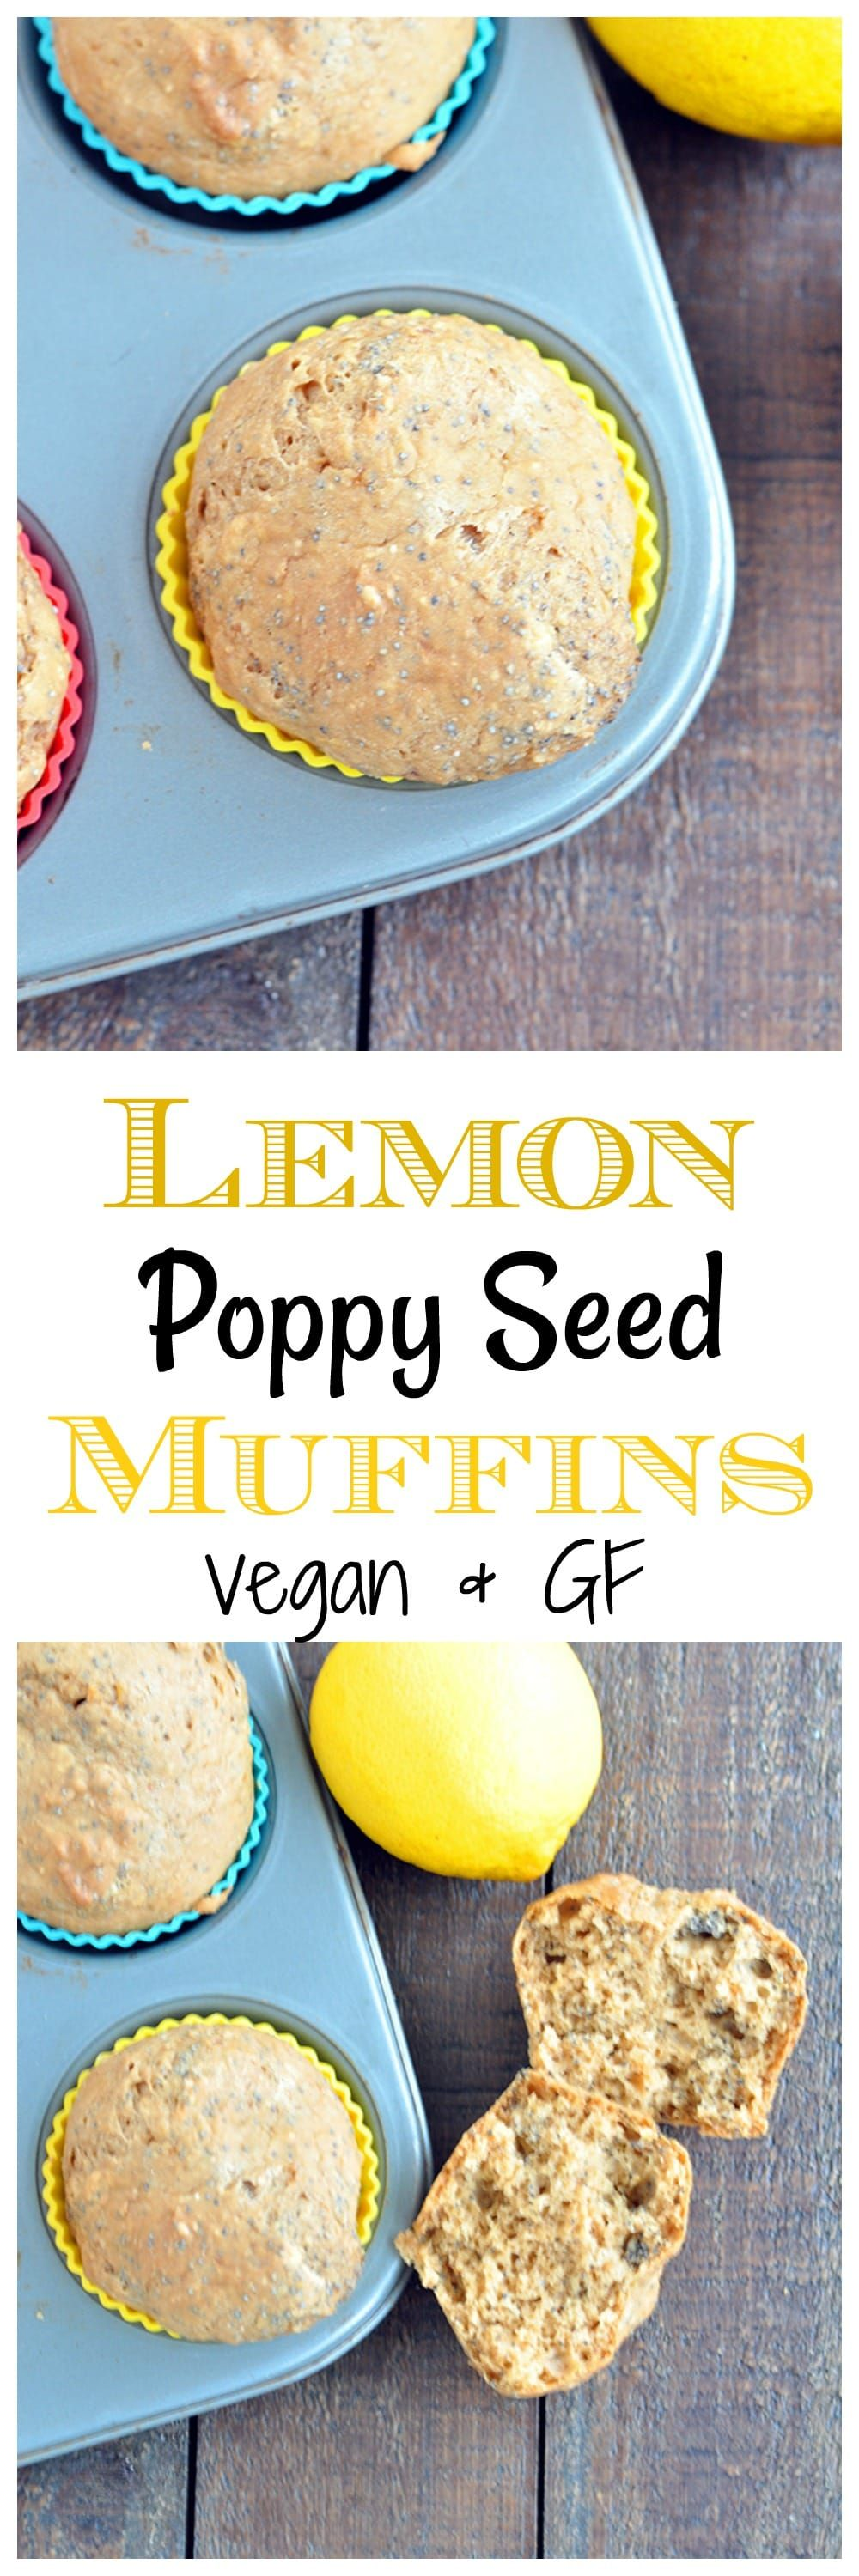 Lemon Poppy Seed Muffins (Vegan, Gluten Free) My Whole